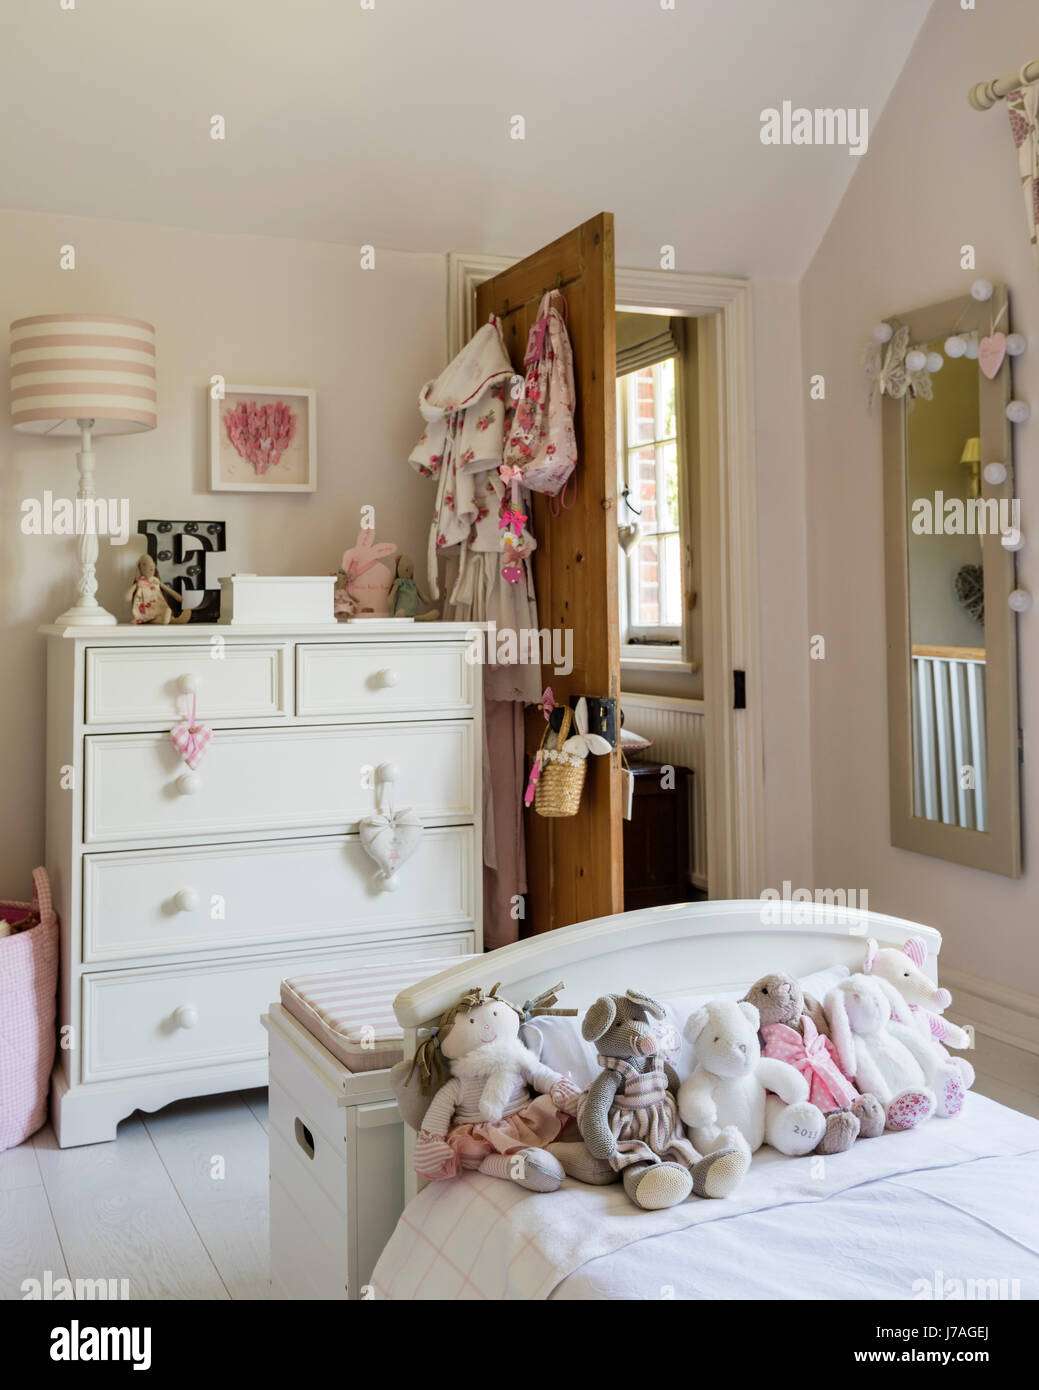 Assorted teddy bears on bed in childs bedroom, the chest of drawers is painted in Farrow & Ball's Pointing by Fairlily Stock Photo